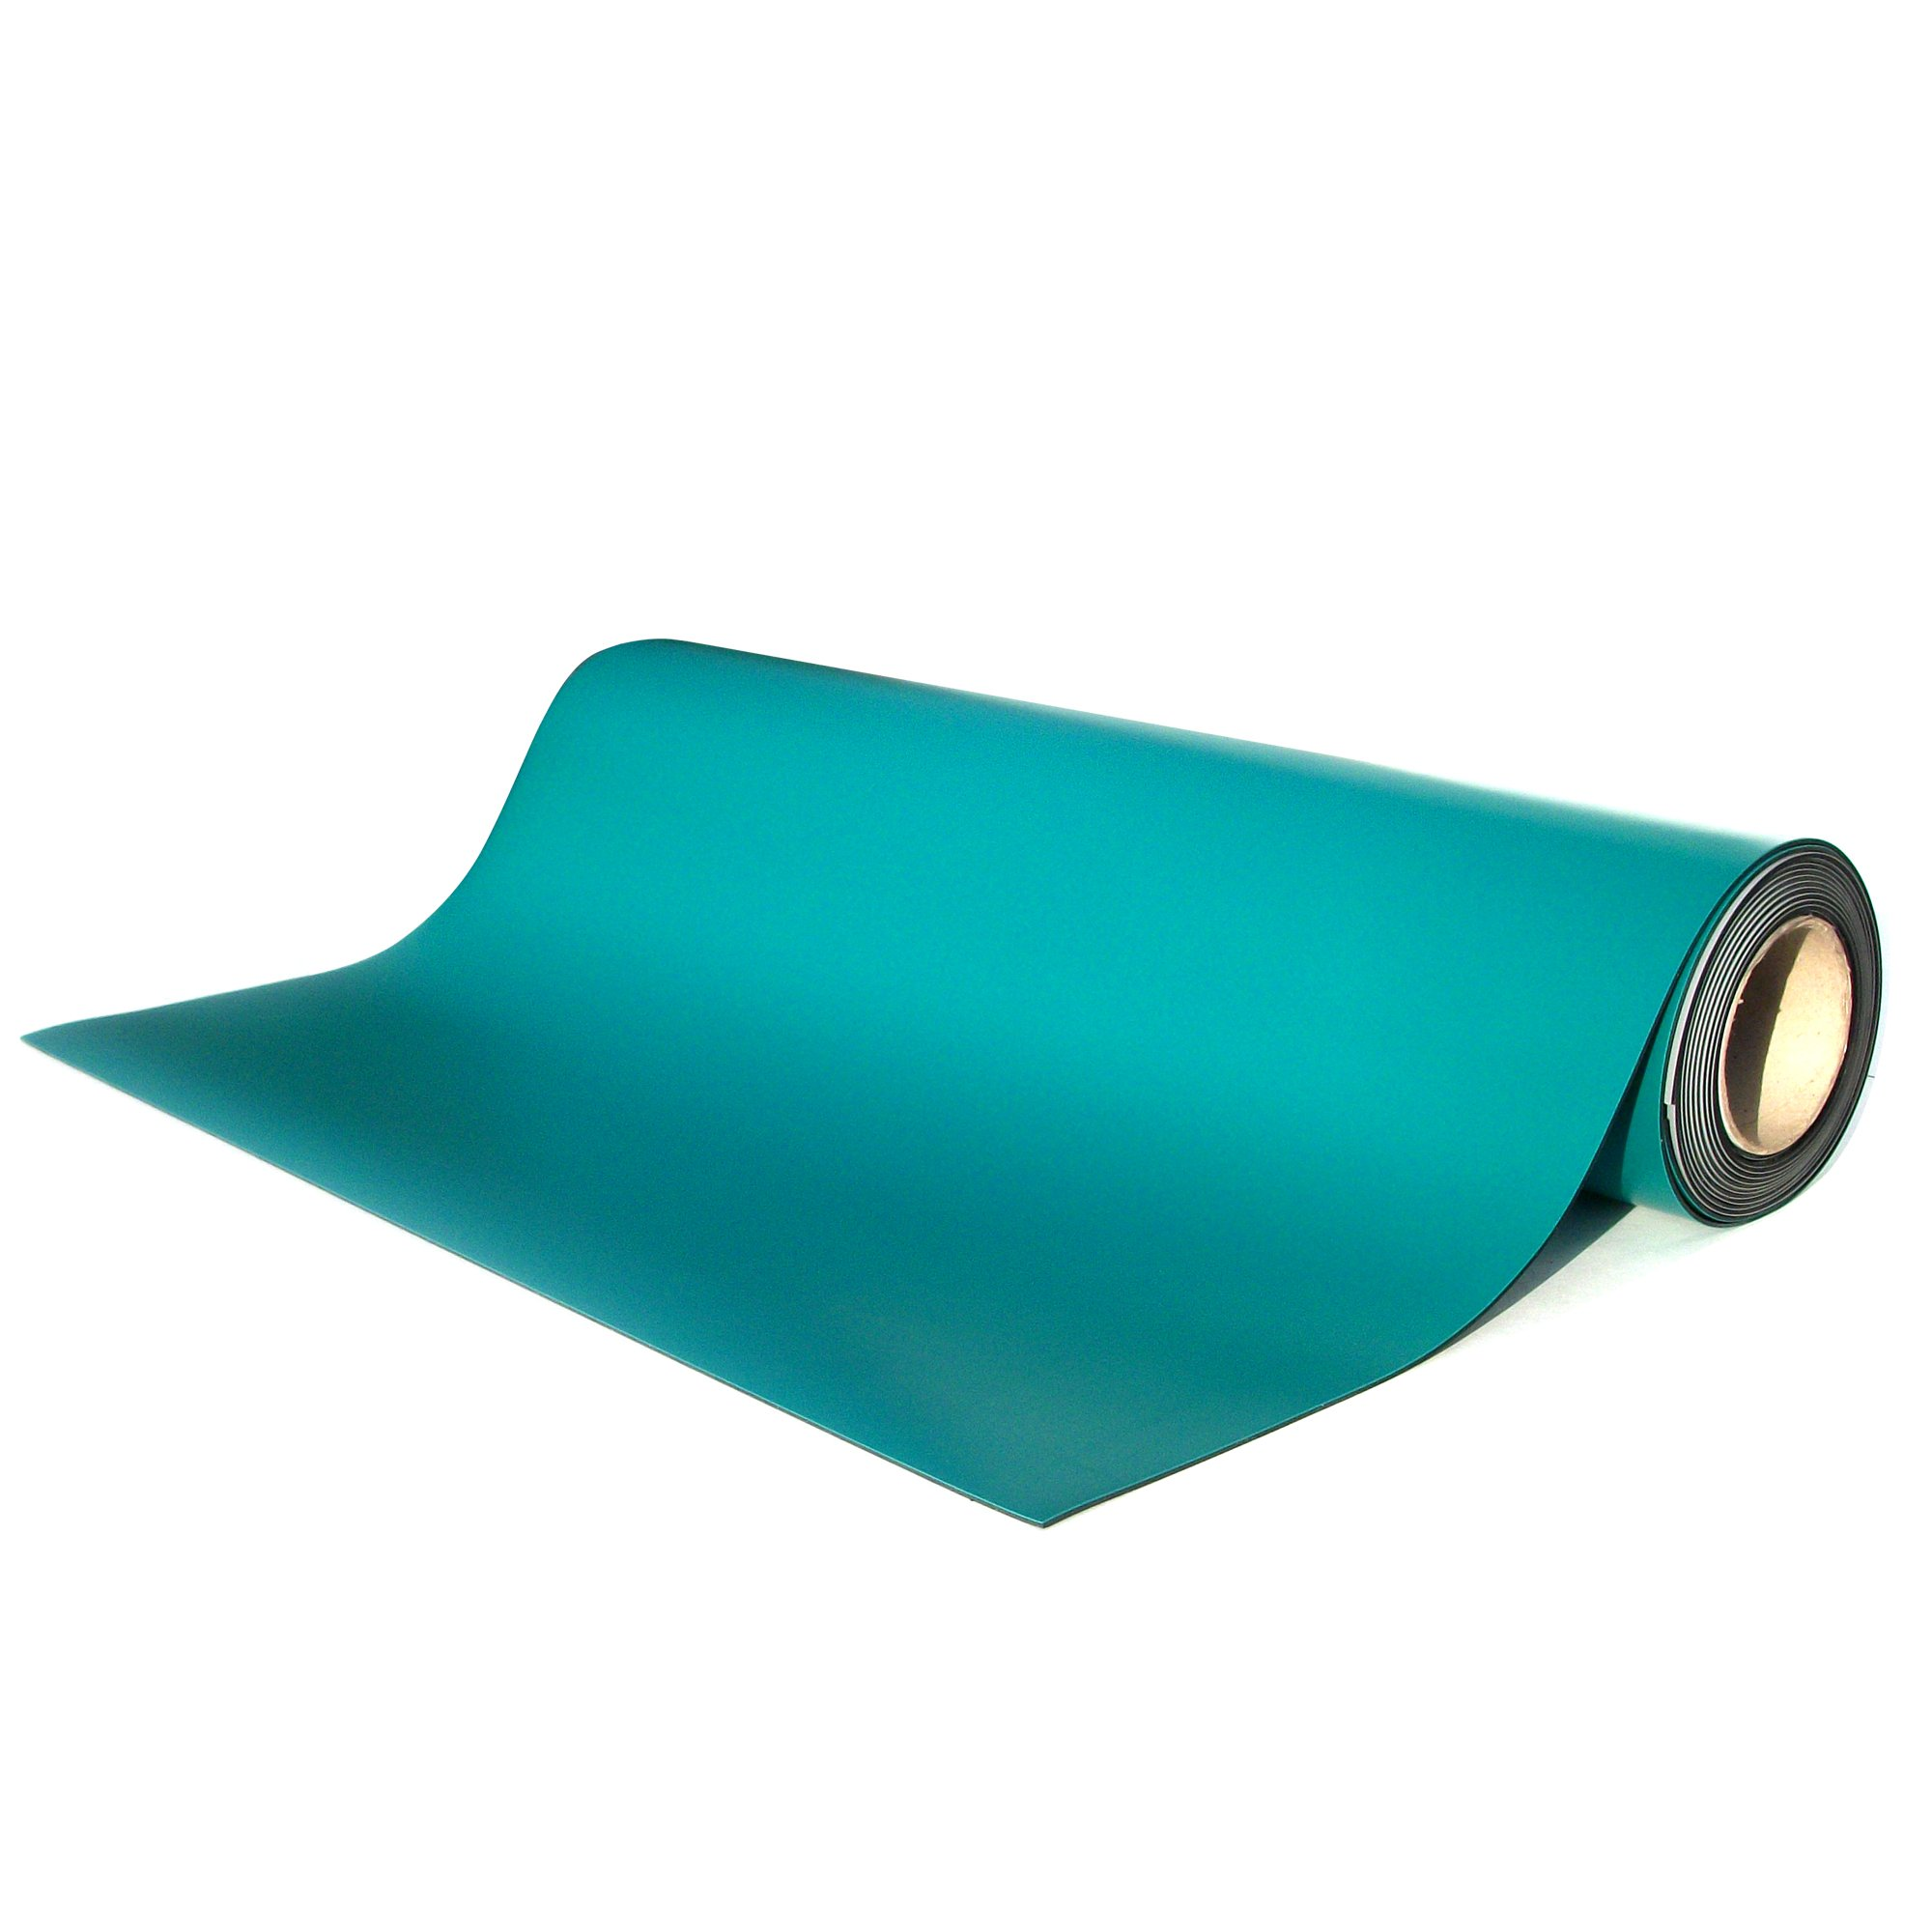 ESD 2 Layer Smooth Rubber Work Surface Mat 36'' x 50' Roll - Green